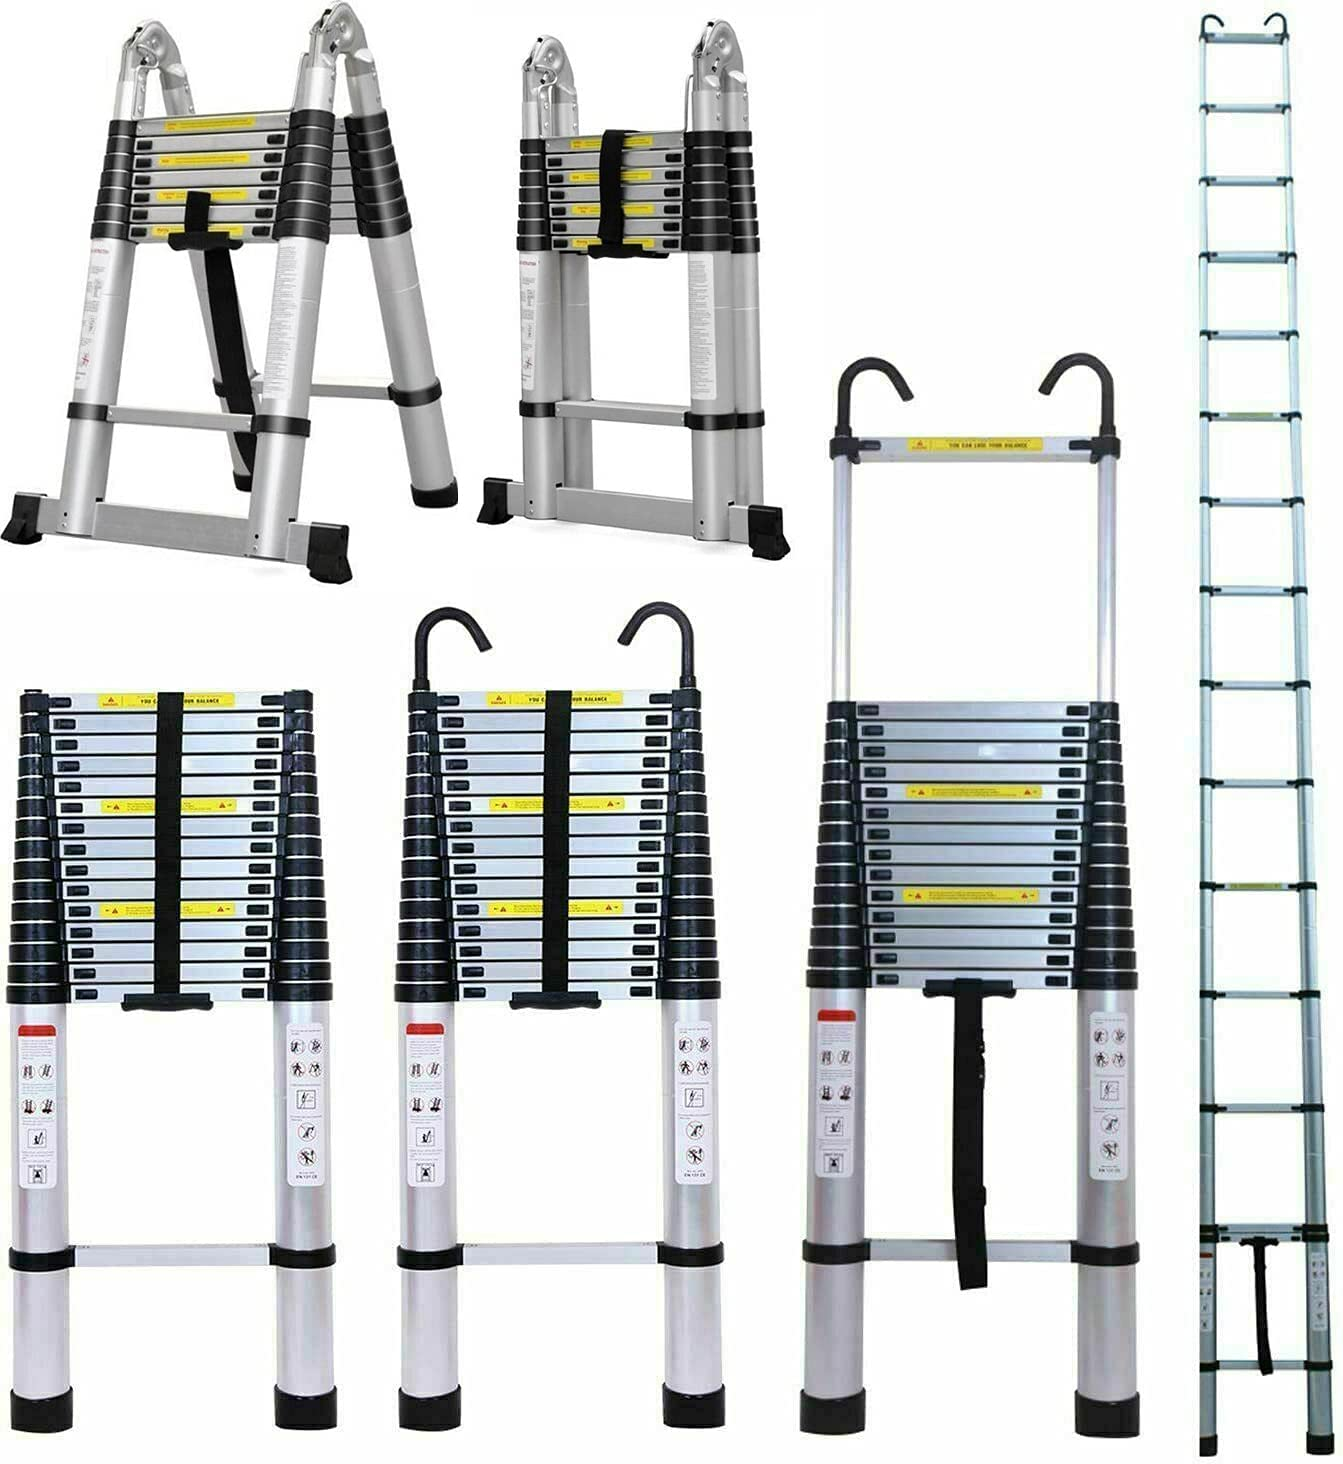 Weekly update Aluminium Extendable Ladder Telescoping 10.5FT Extension 2021 spring and summer new